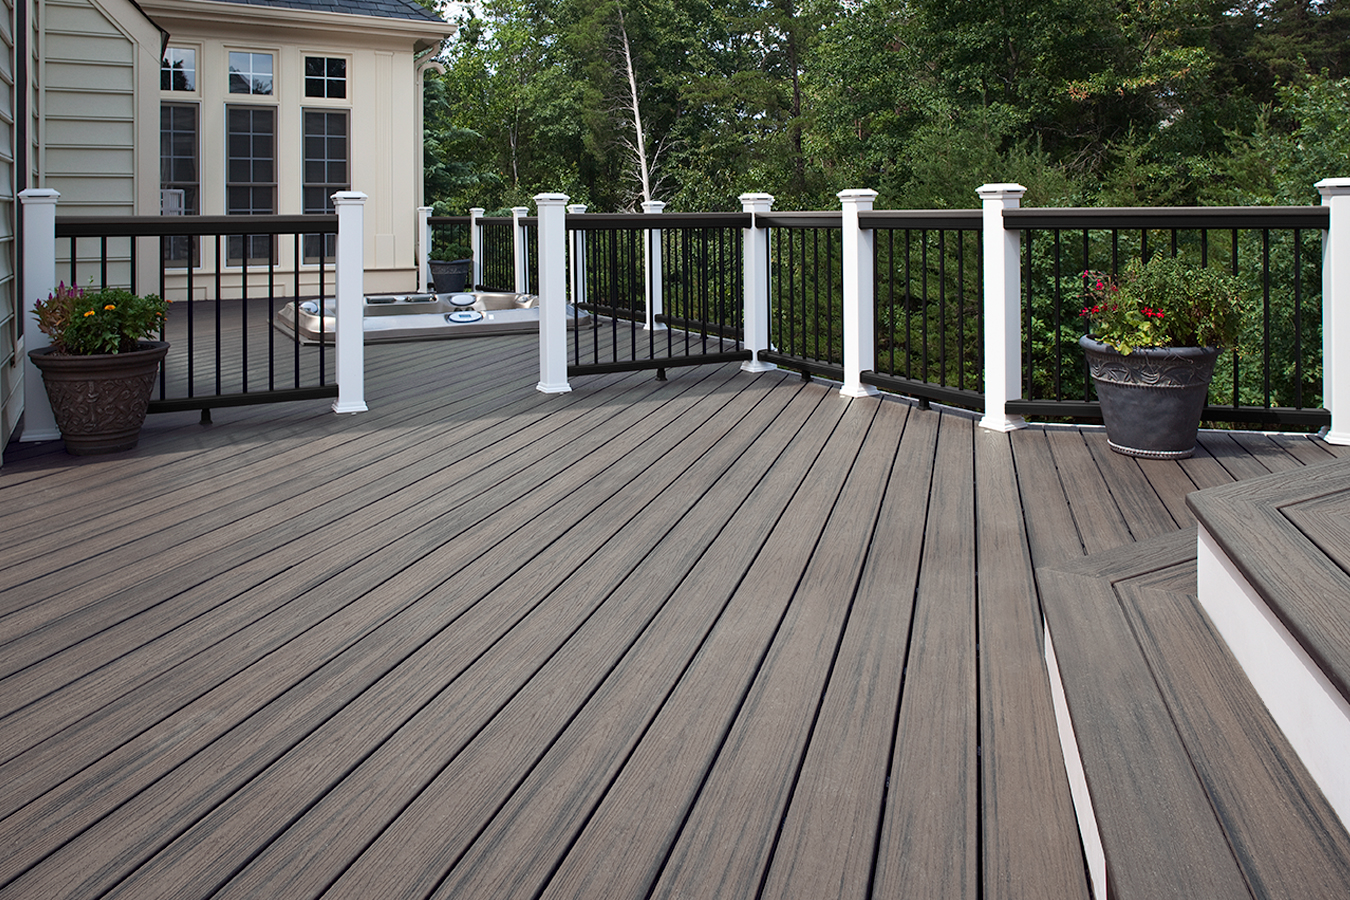 standard trex decking cost with high quality wood material which matched with strong railing in black and white for patio decor ideas